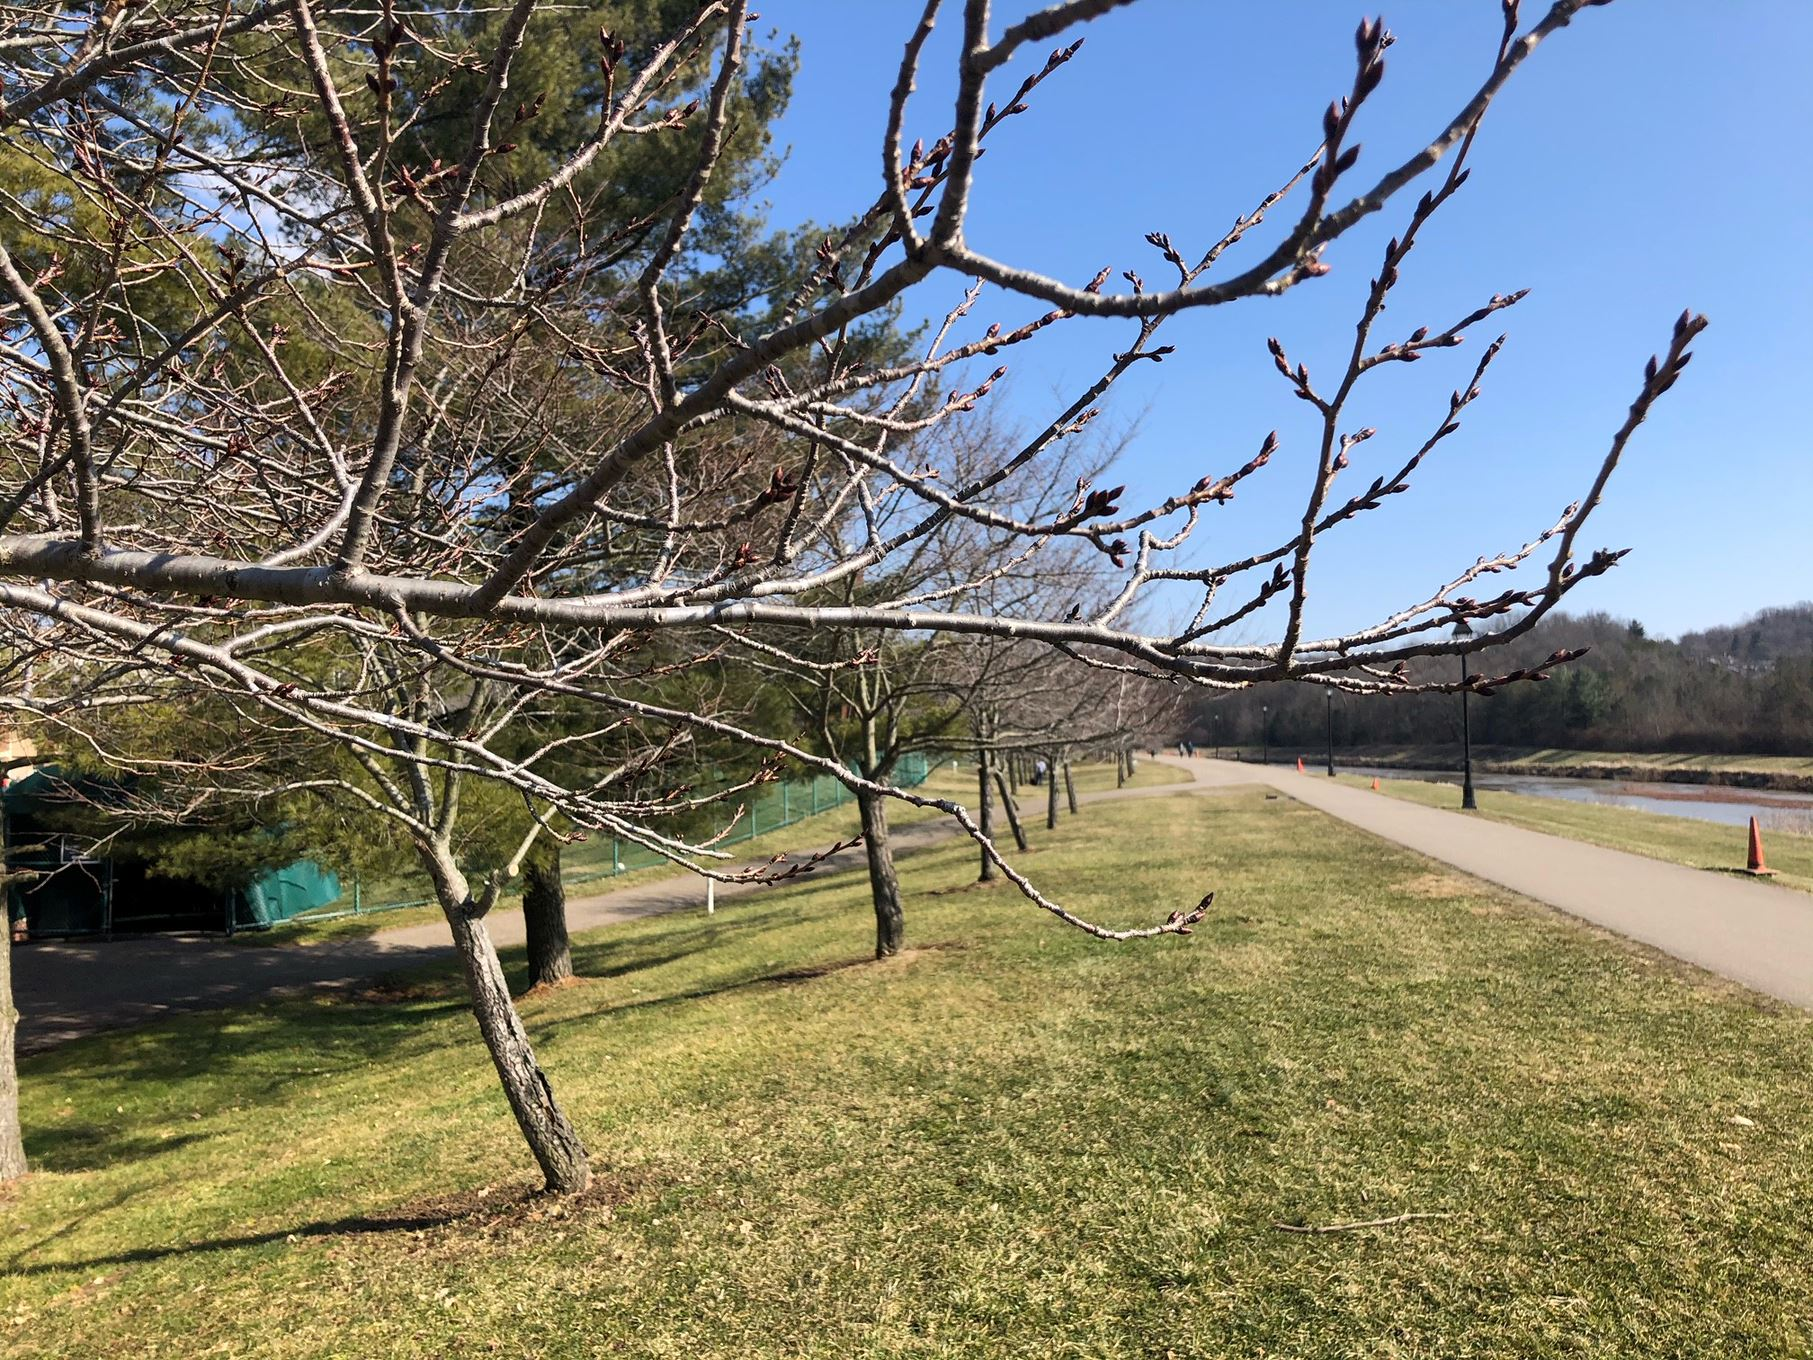 Bare cherry trees on March 4th